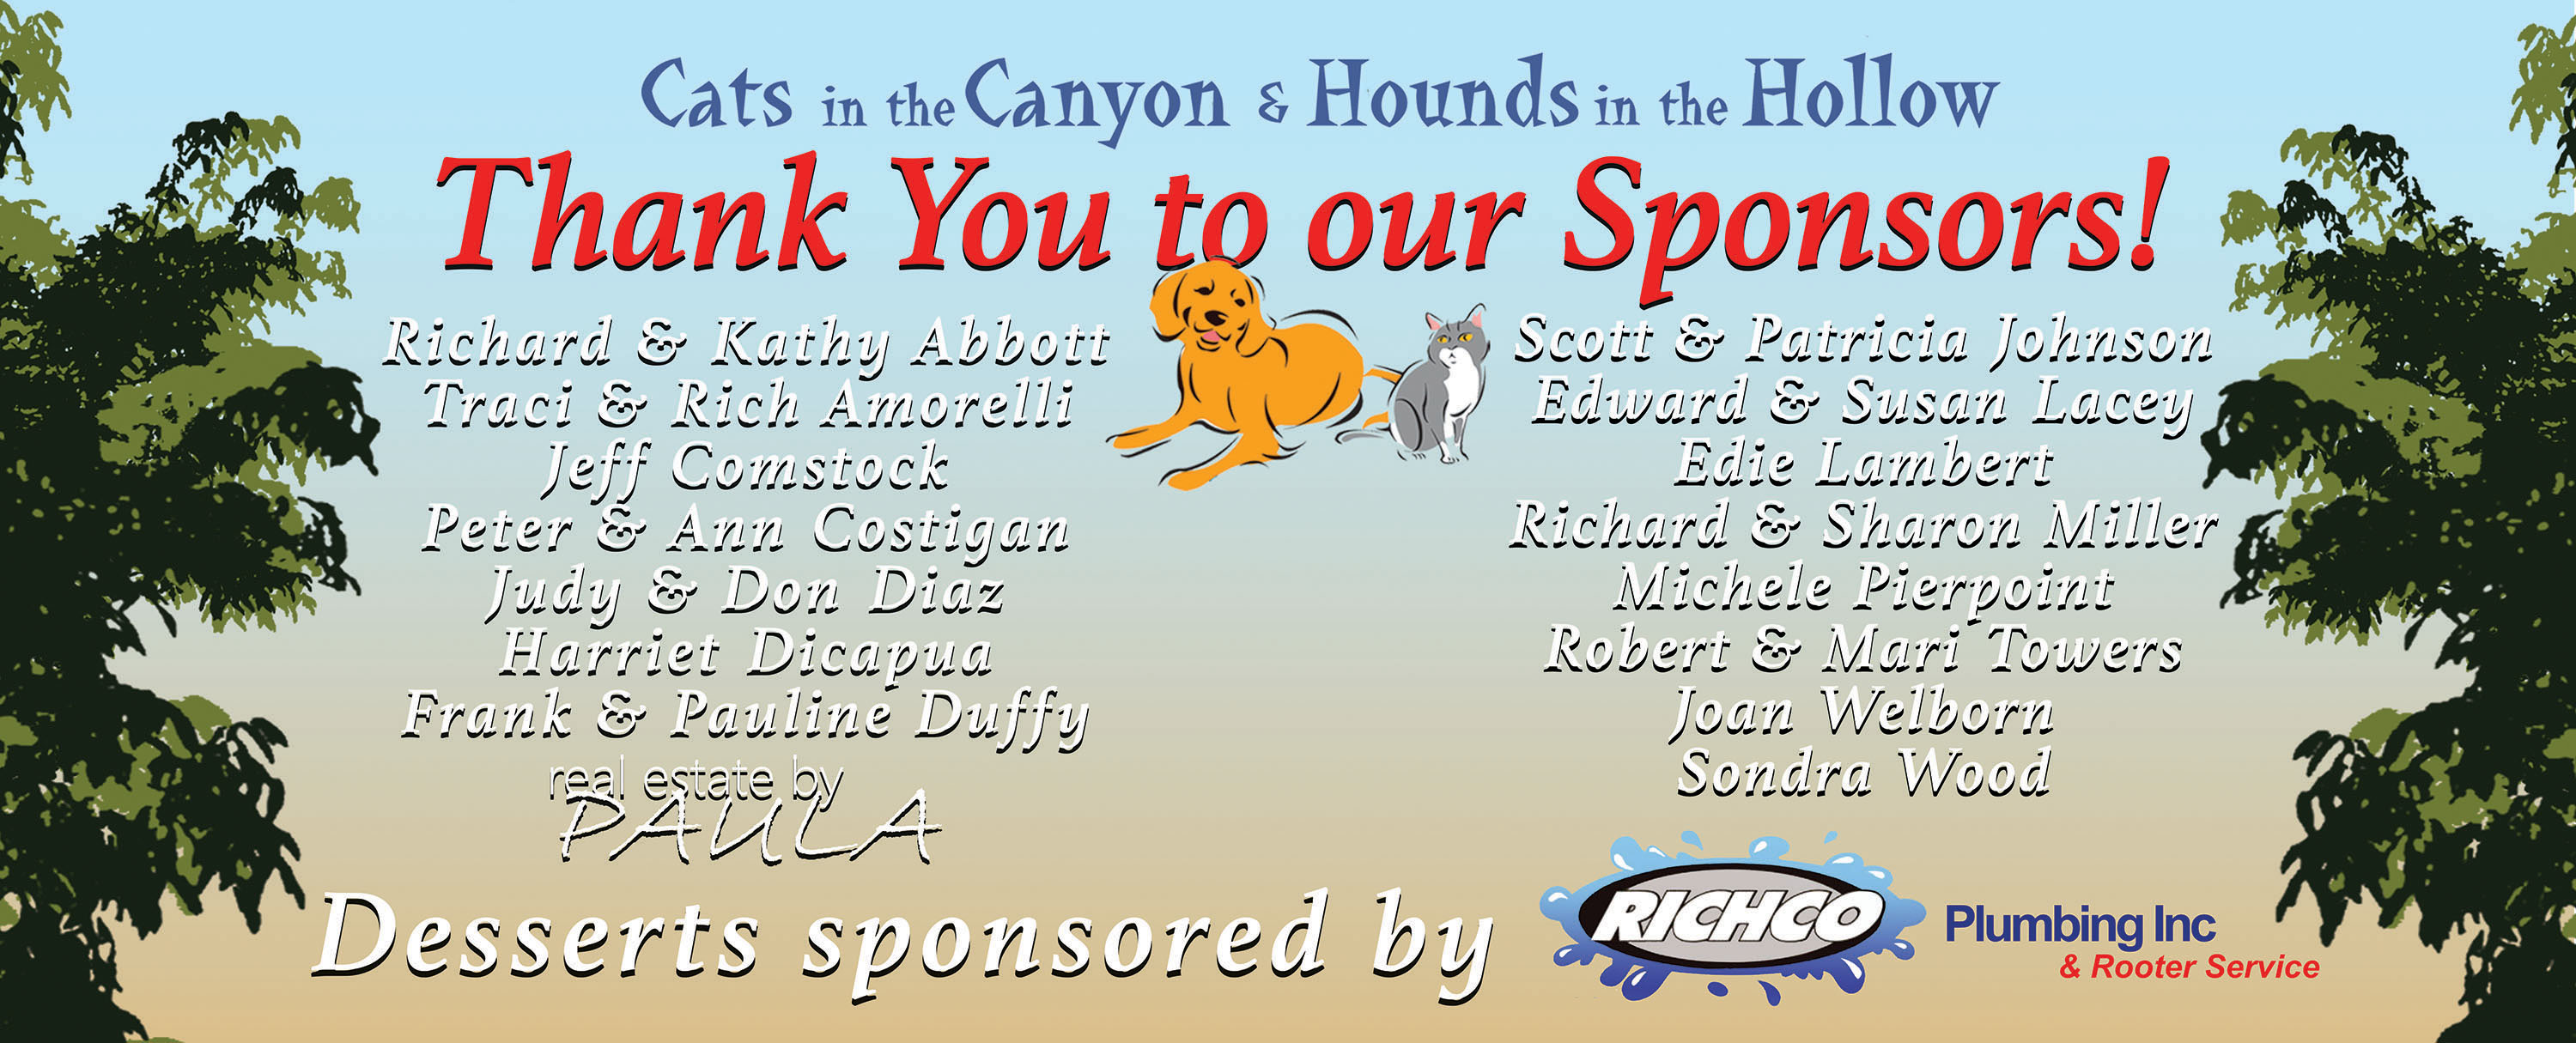 A Success! - Cats in the Canyon & Hounds in the Hollow 2016 - Humane ...